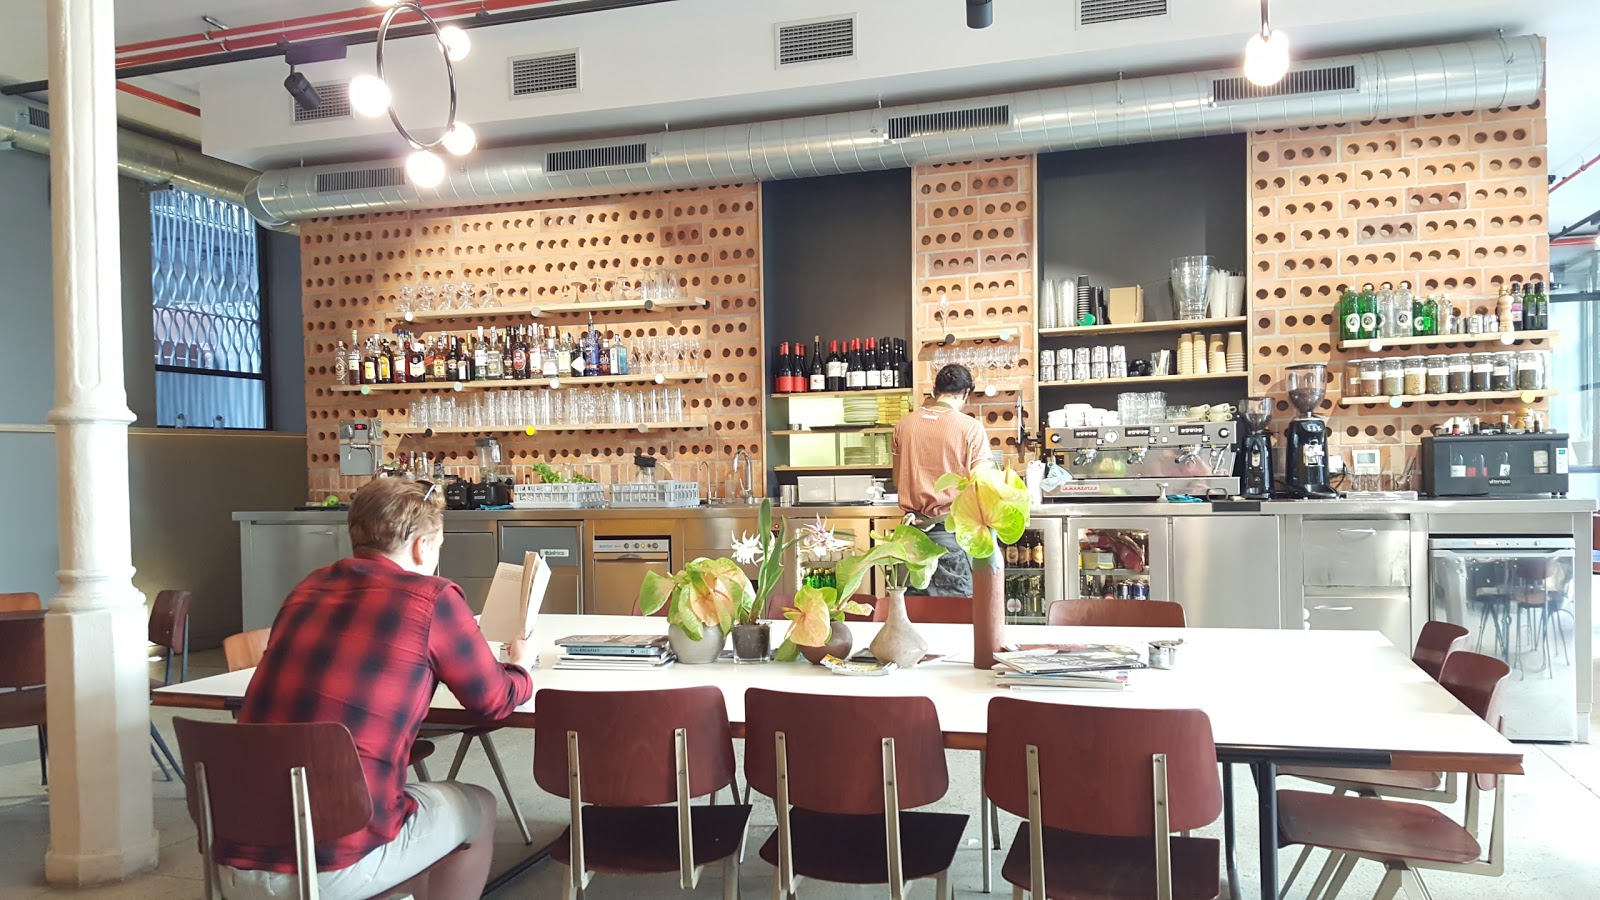 Federal Café: A Work-Friendly Place in Barcelona